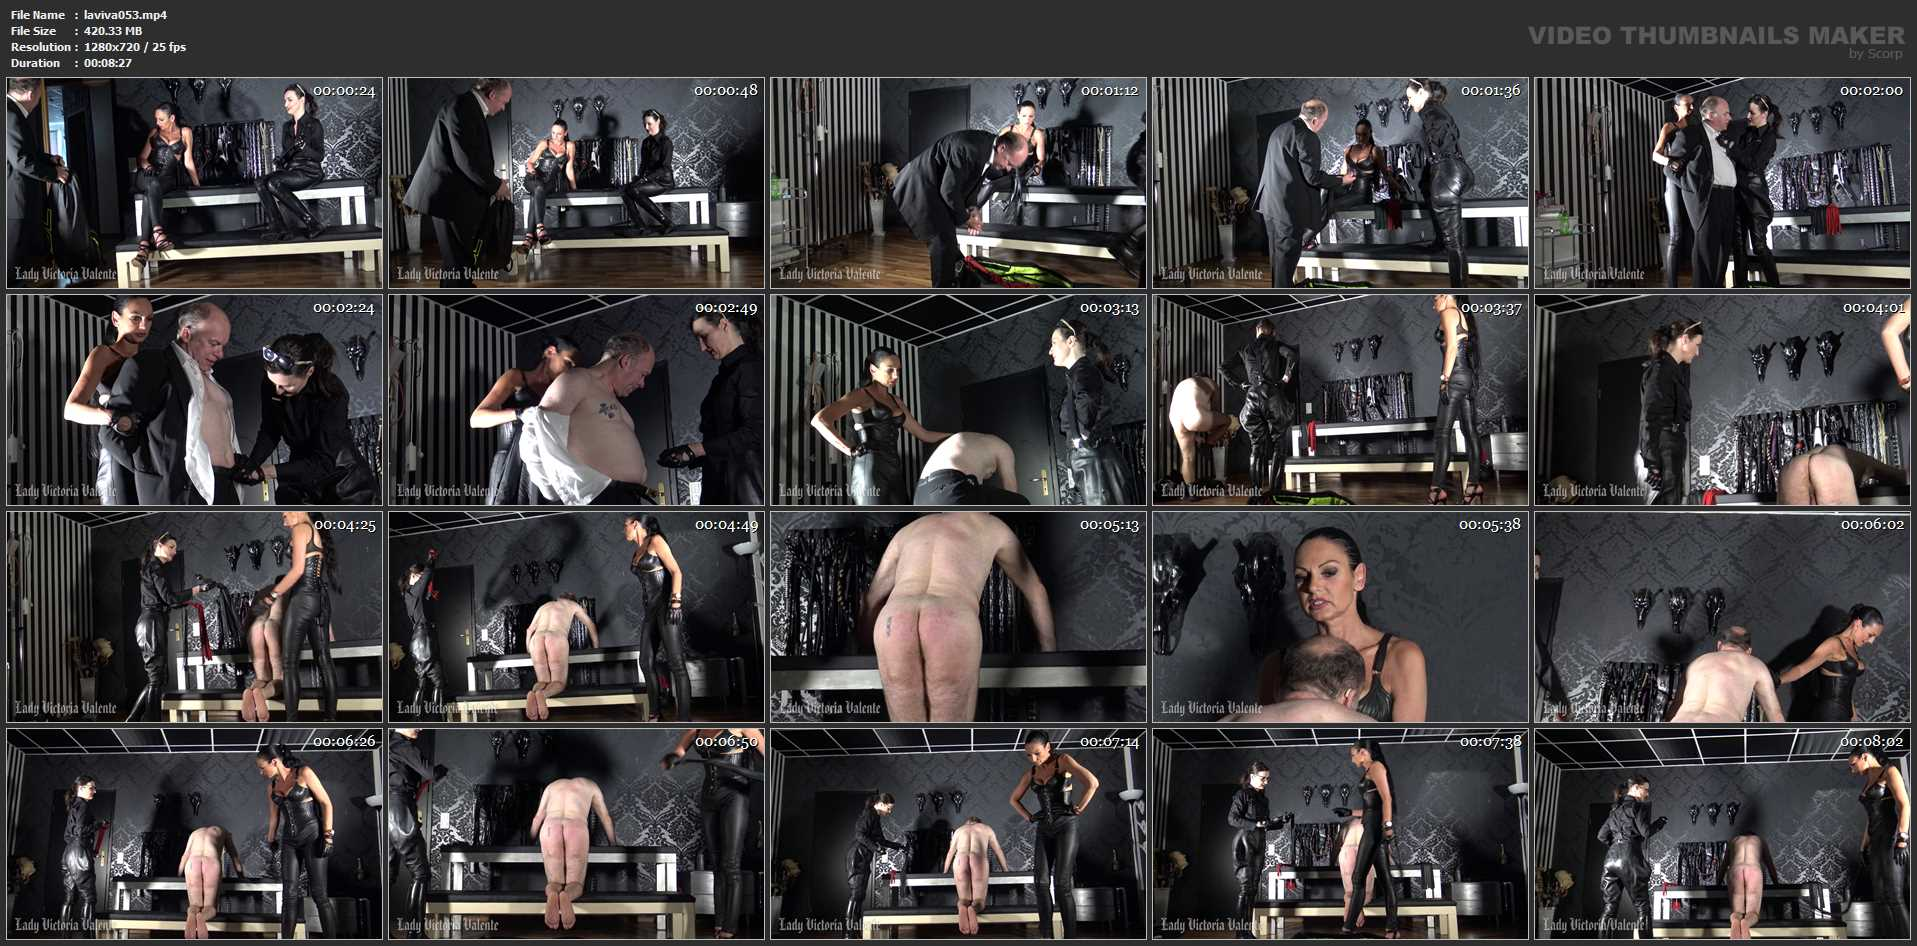 Lady Victoria Valente In Scene: The whip seller Part 1 - LADYVICTORIAVALENTE - HD/720p/MP4